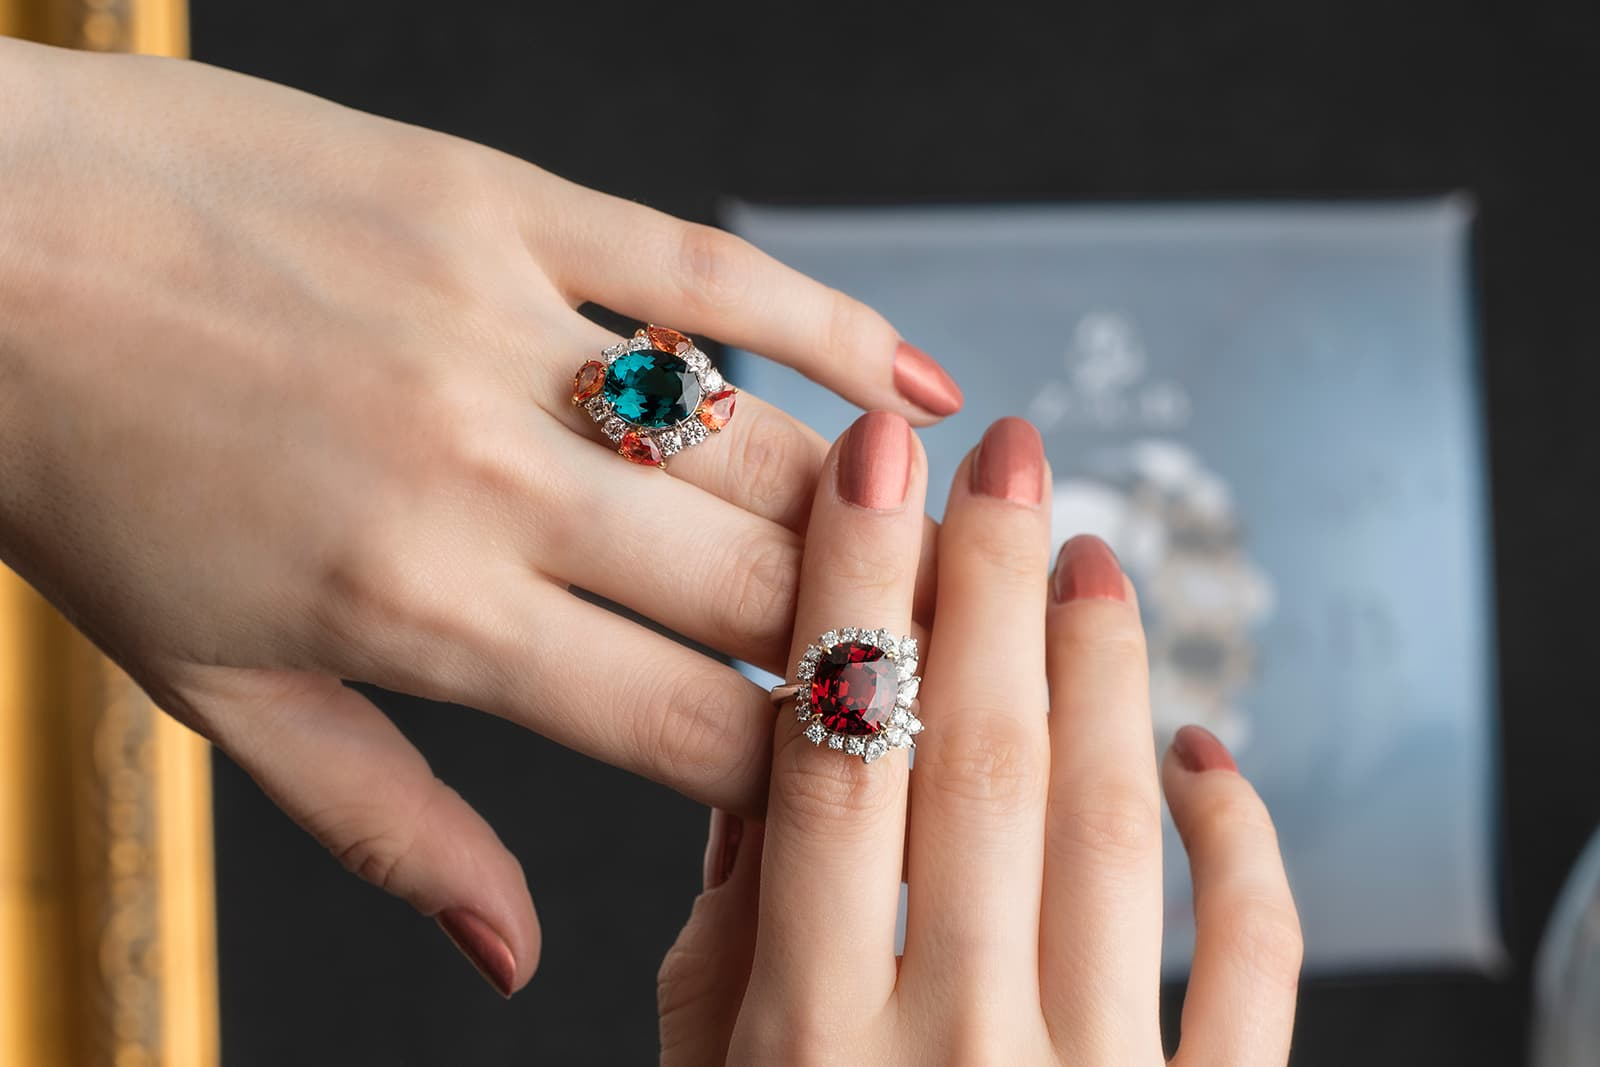 Left: blue tourmaline ring with padparadscha sapphires and diamonds, right: spessartite garnet ring with diamonds by Jessie Foo